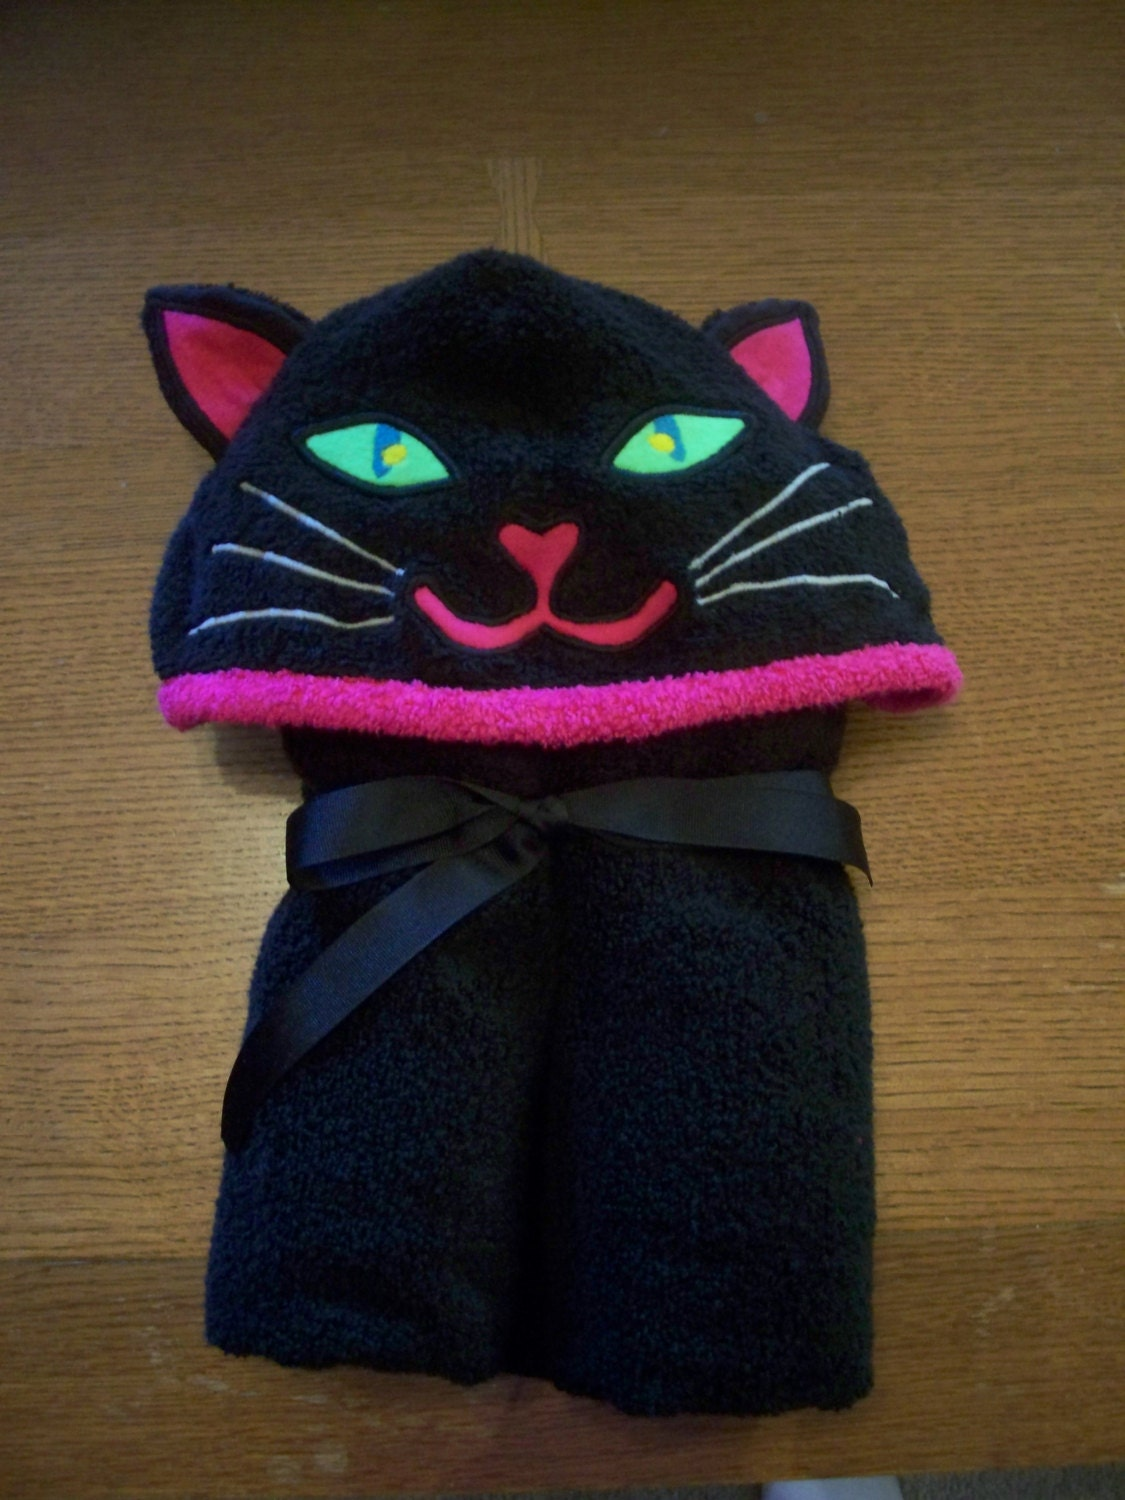 Adult Size Cat Hooded Towel Free By Nanabananasgifts On Etsy